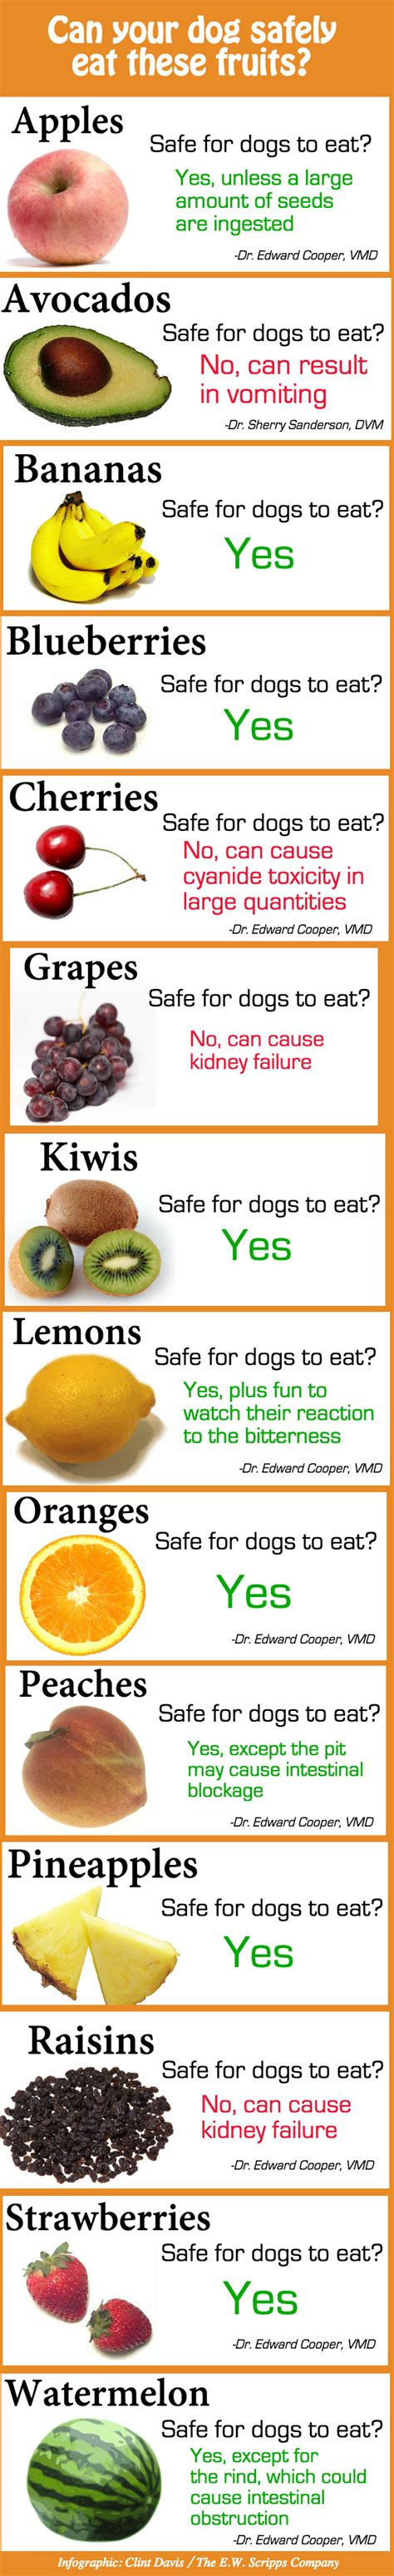 can dogs eat plums can your safely eat these fruits tfe times